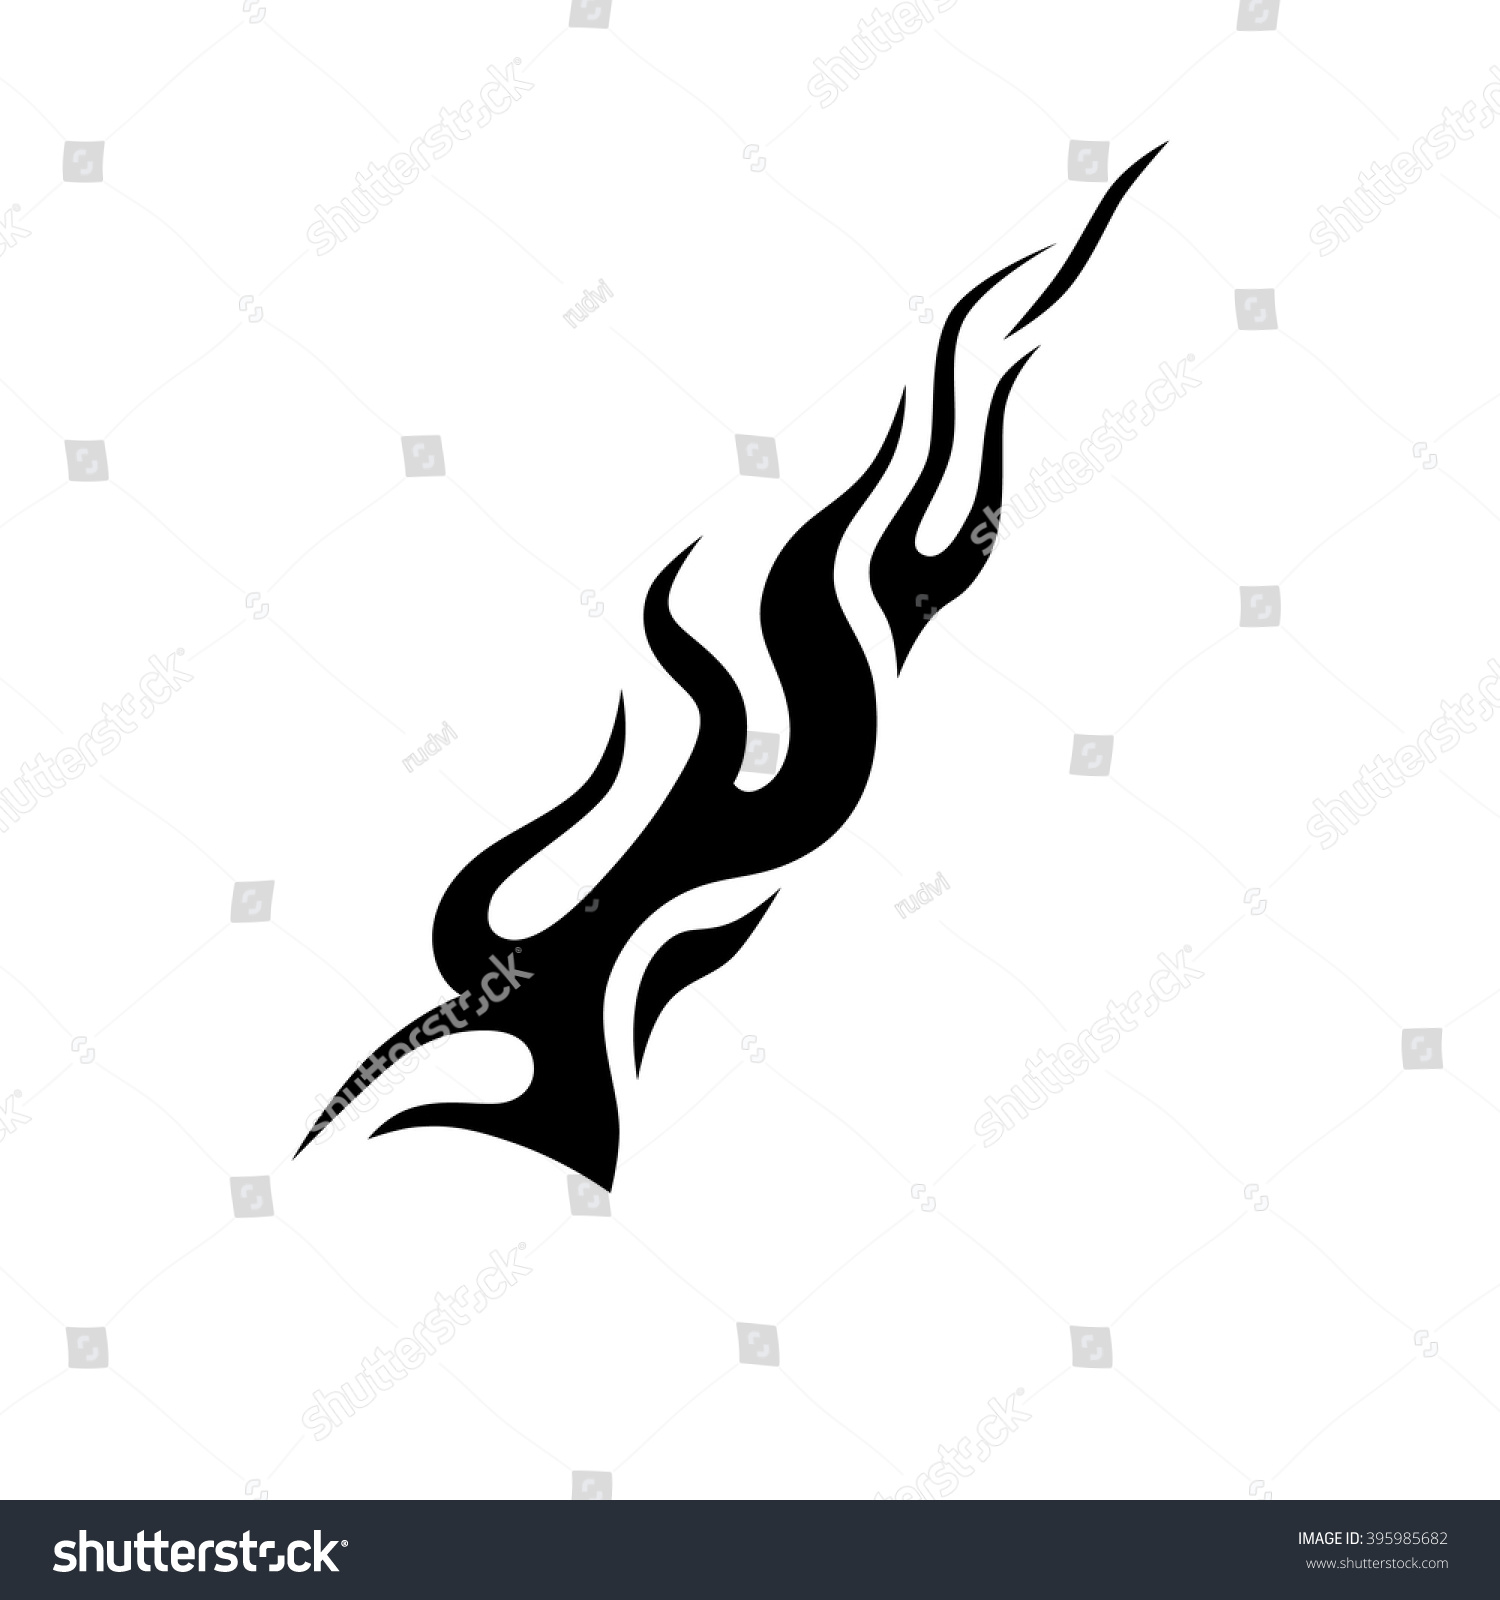 Tribal-Tattoos stock-vector-black-tribal-flame-for-a-tattoo-logo-or-other-design-tribal-tattoos-art-tribal-tattoo-vector-395985682